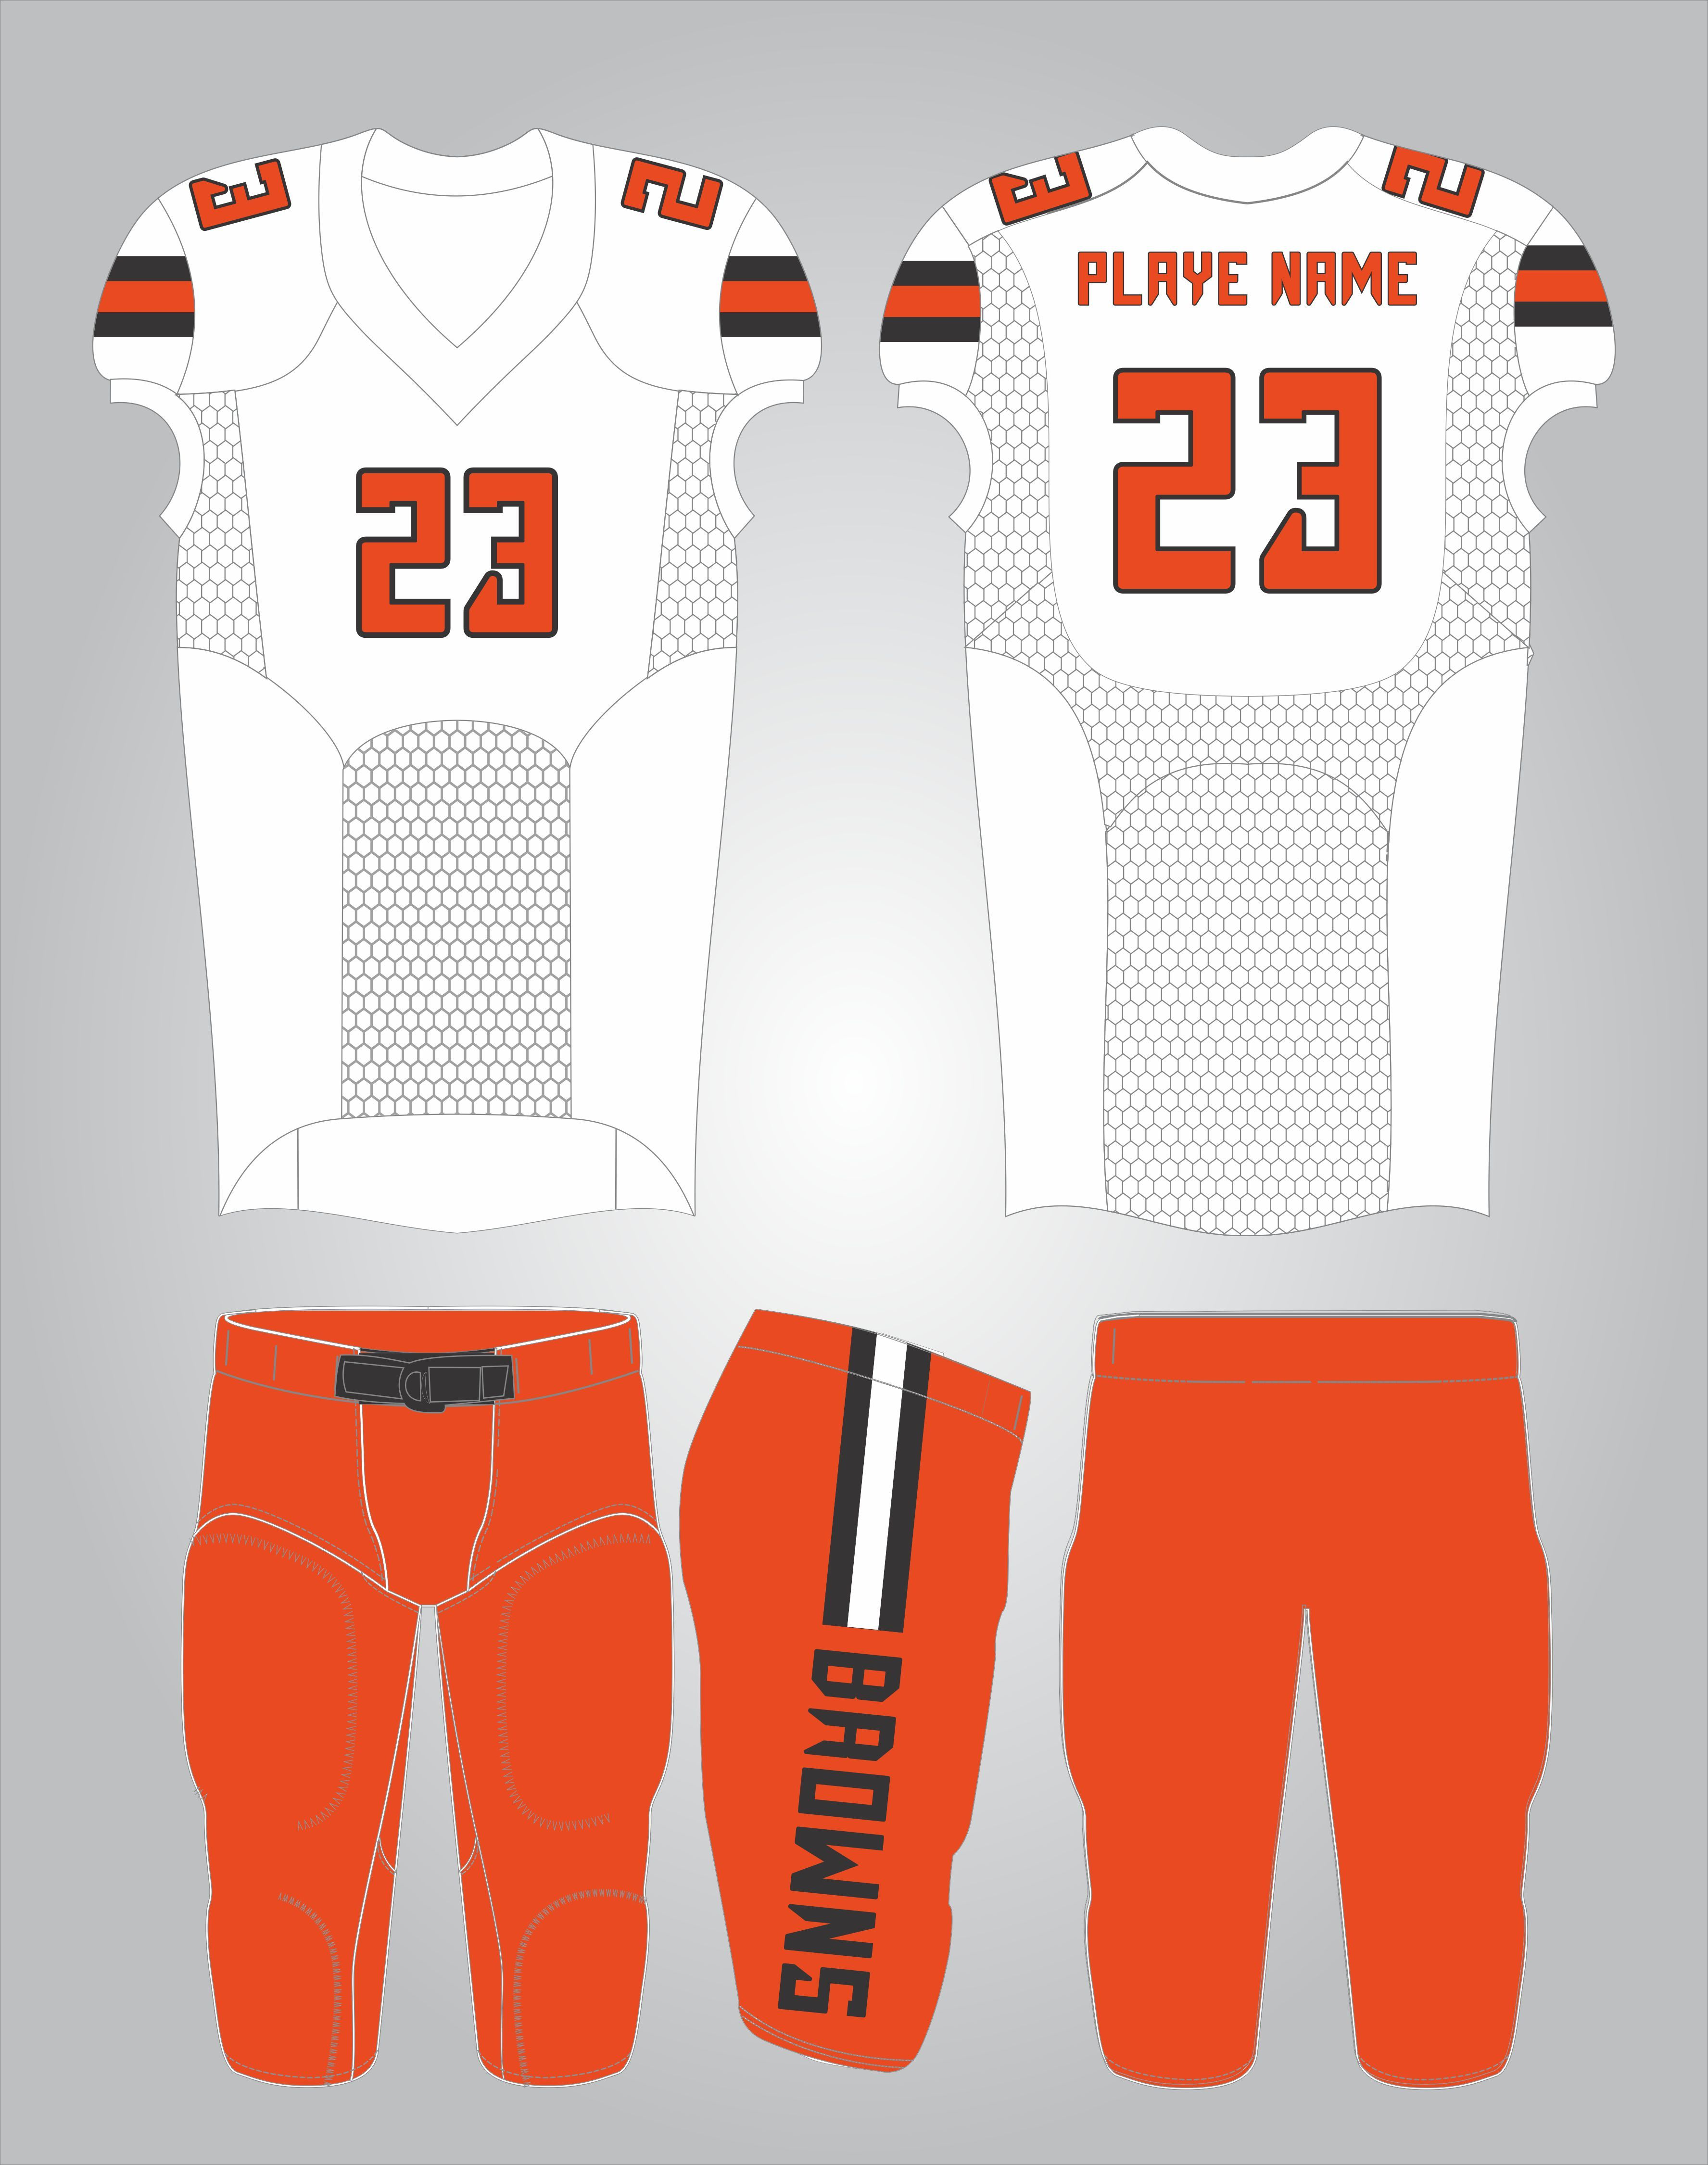 855bffa40 Contact us for top quality  Custom  Sublimation  AmericanFootball  Uniforms  on lowest price and fastest turnaround. Email us at info rasimsports.com